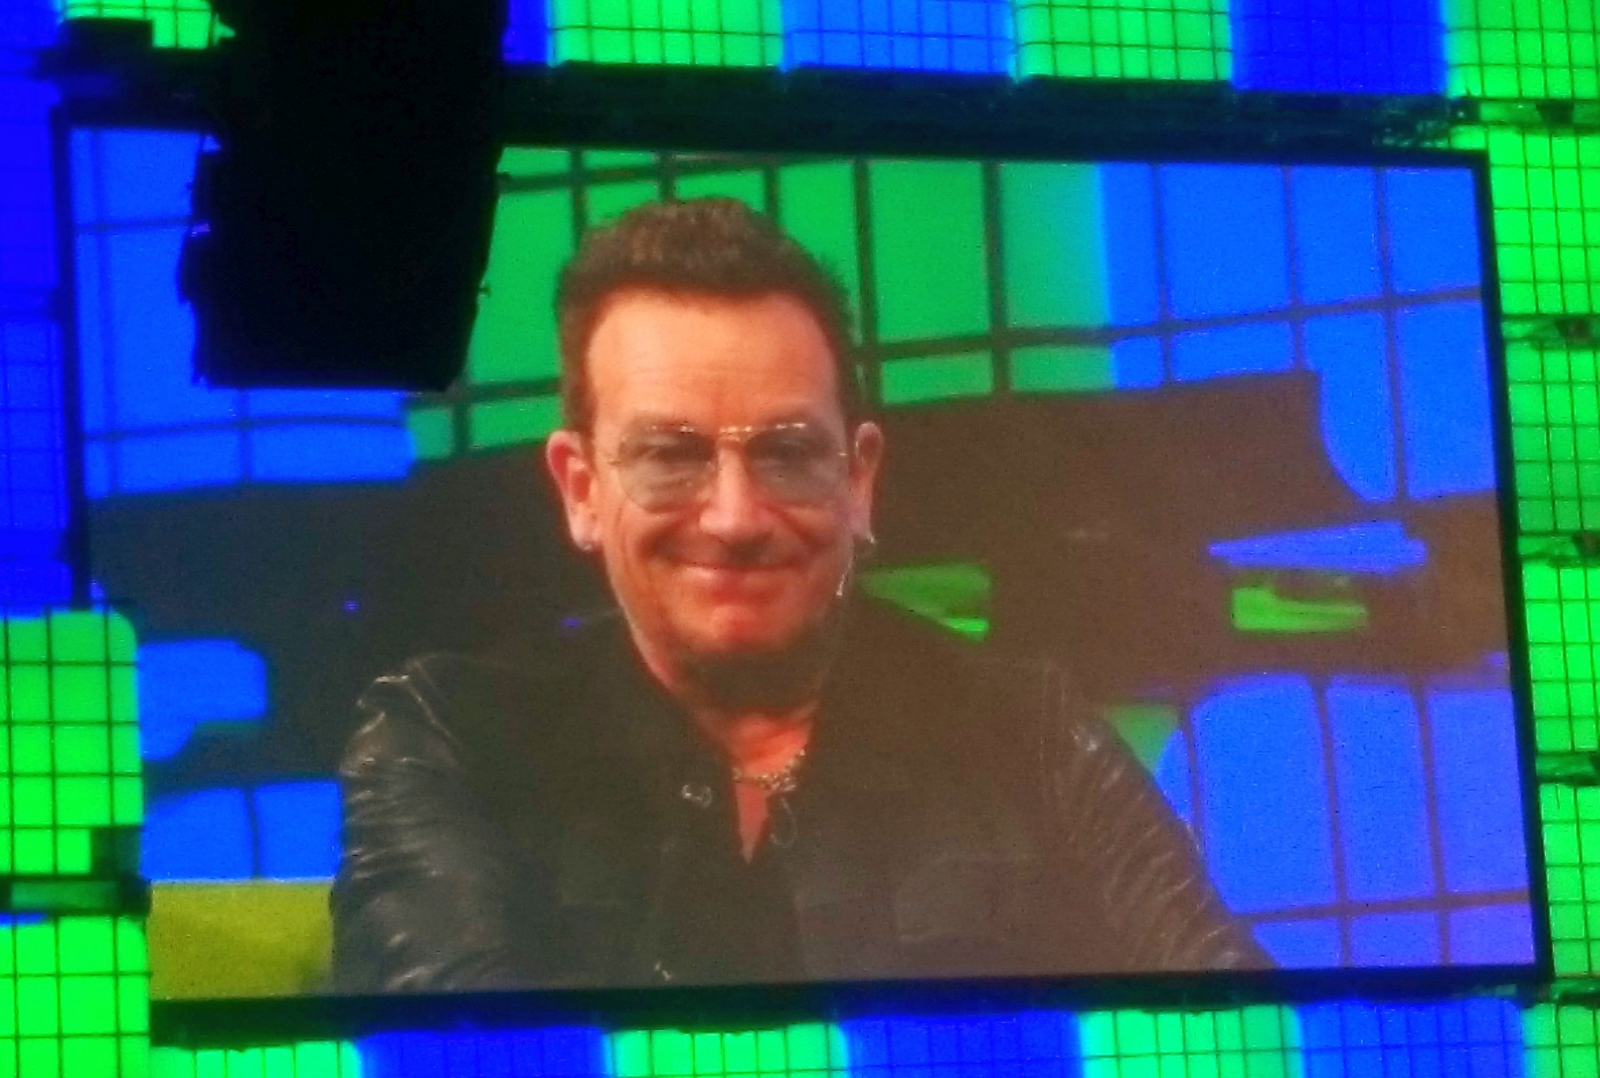 U2's Bono appeared at Web summit 2014 to talk about the future of music